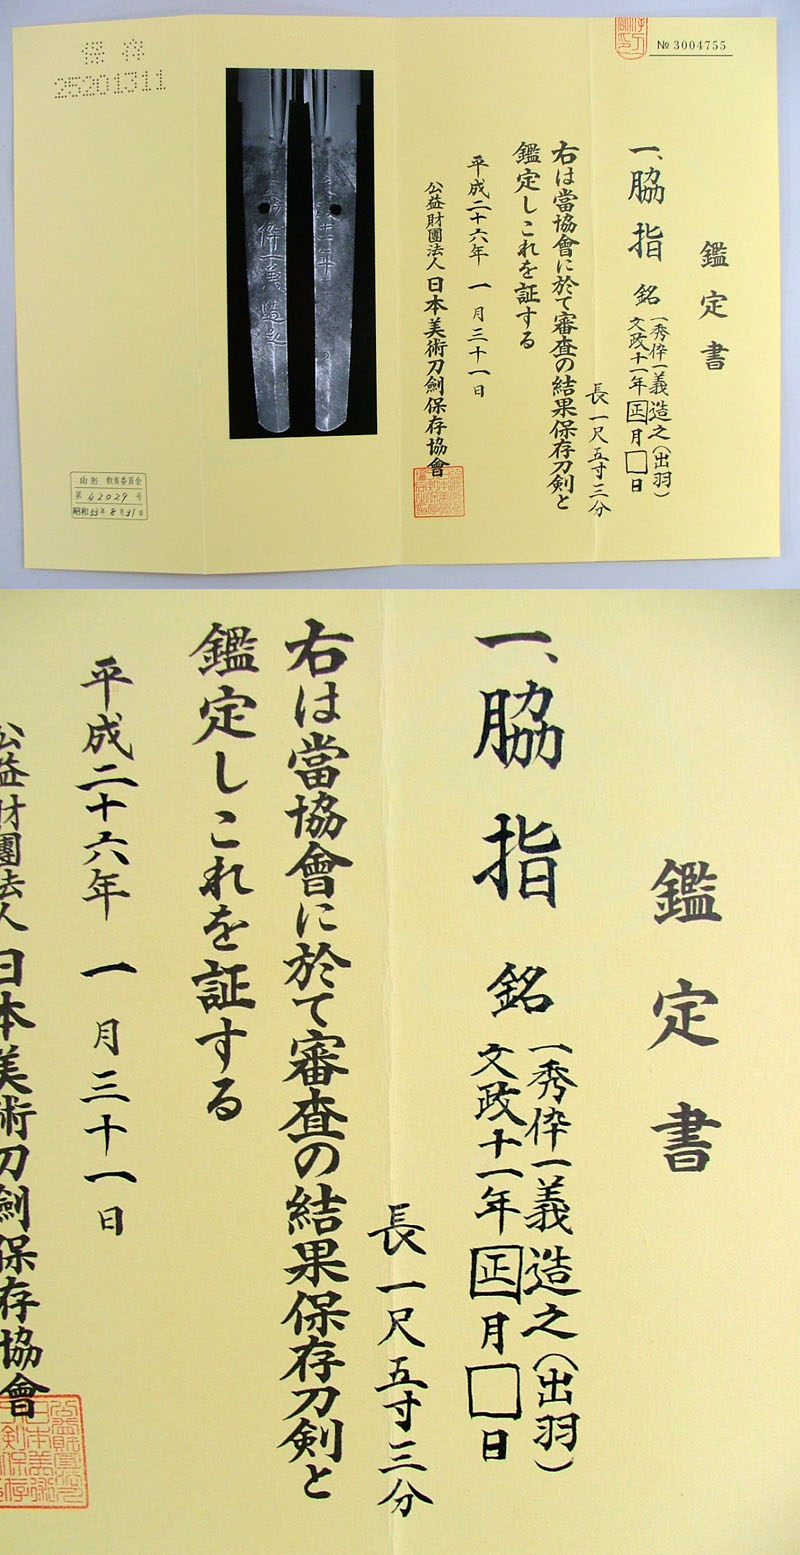 1秀伜1義造之 Picture of Certificate